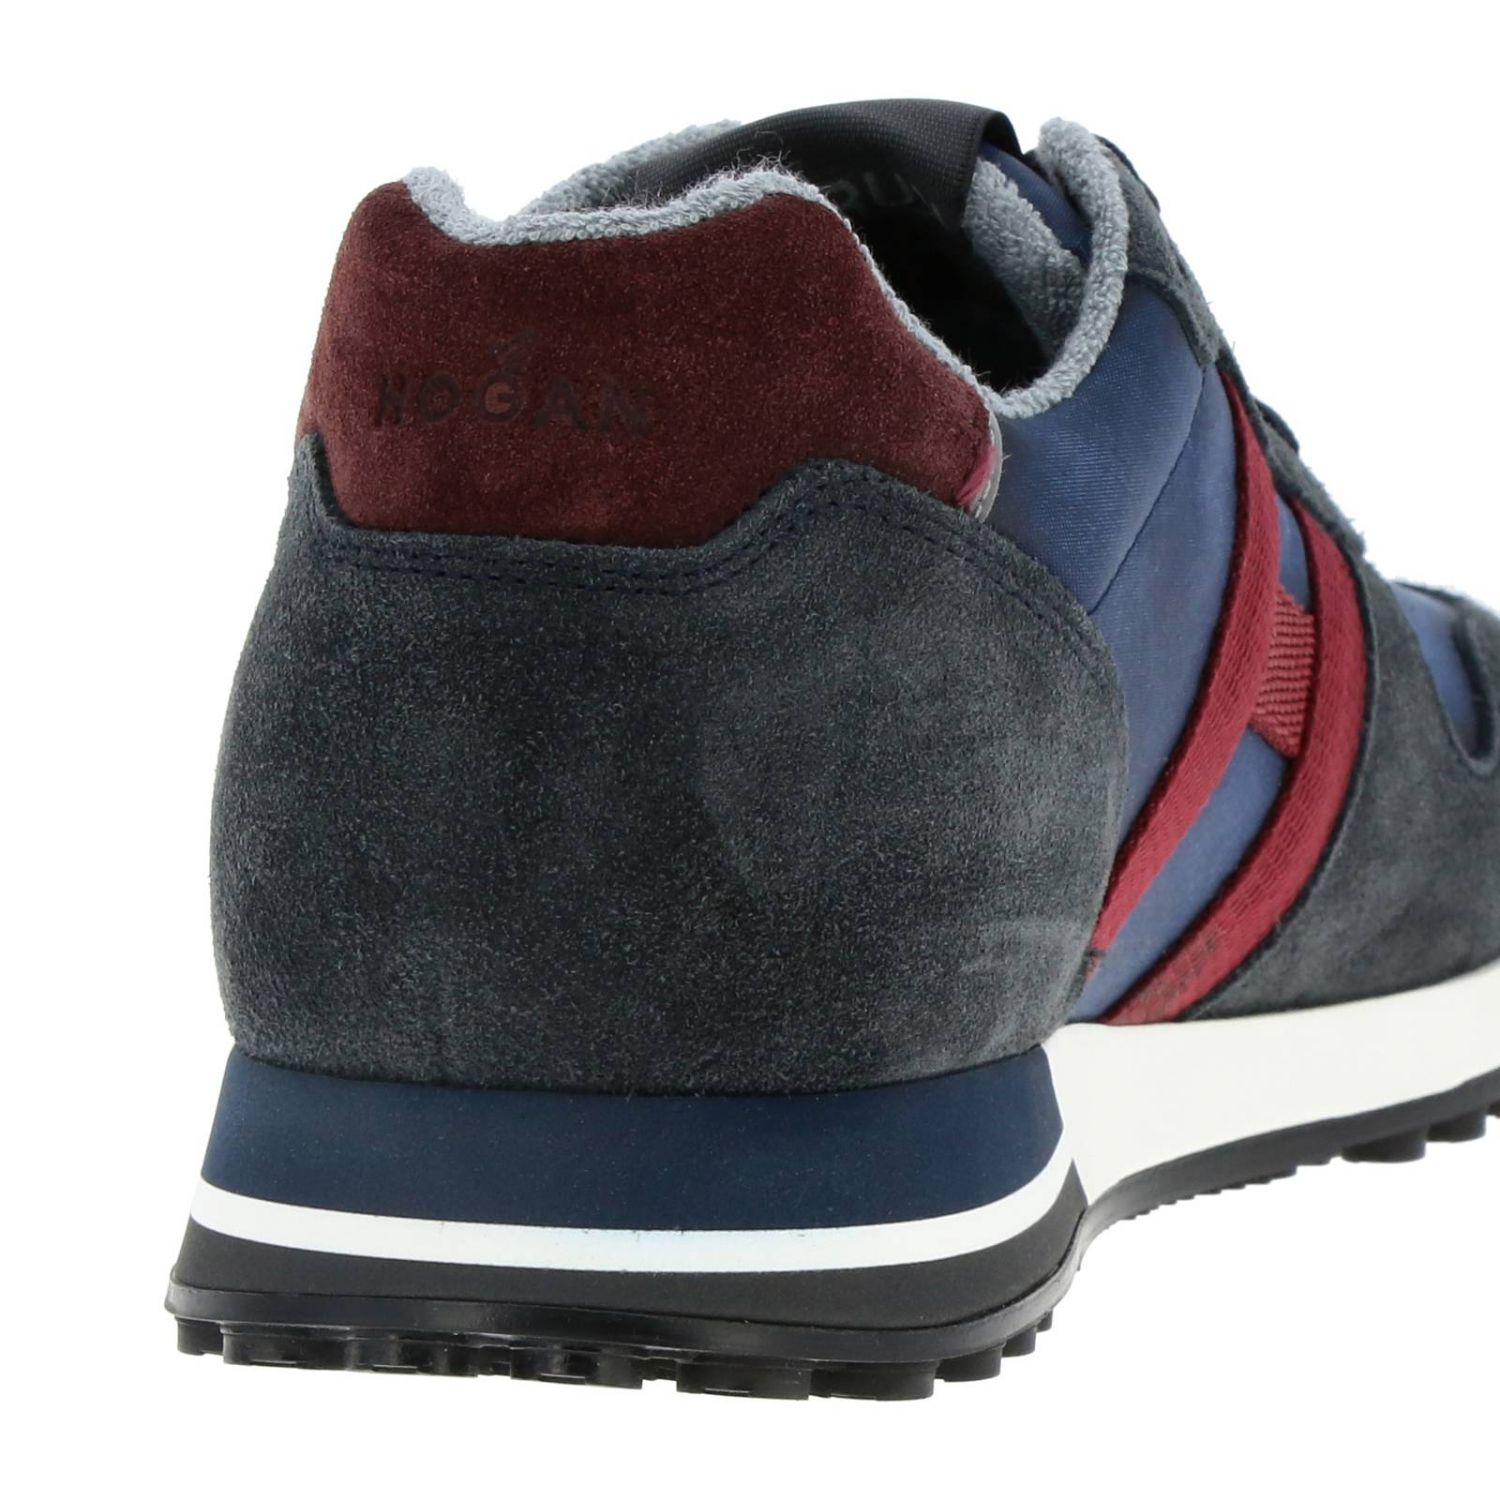 Sneakers 383 split leather and fabric Hogan with monochrome H blue 4